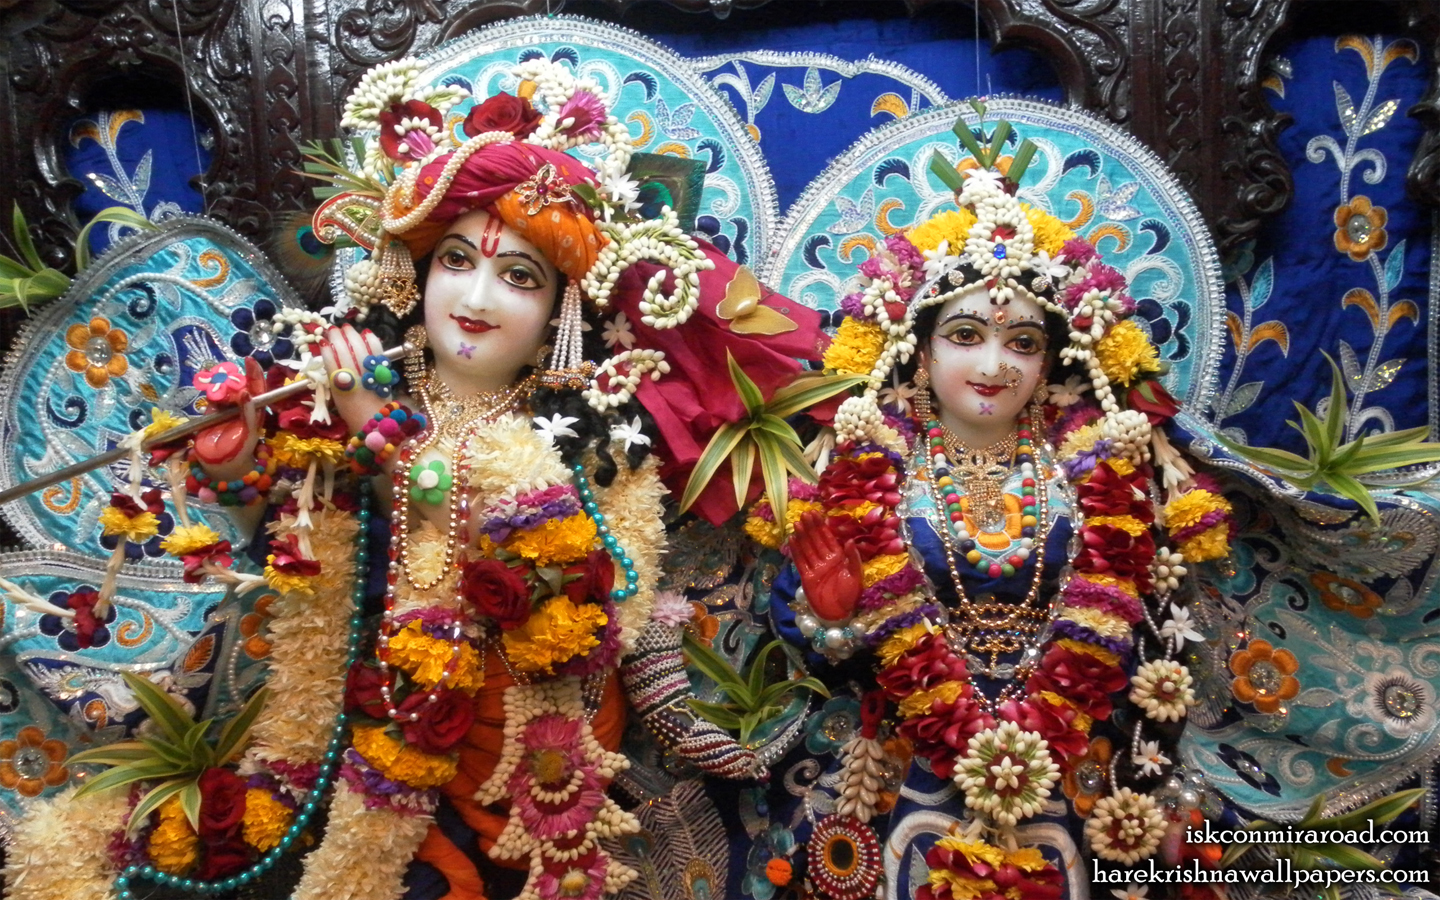 Sri Sri Radha Giridhari Close up Wallpaper (018) Size 1440x900 Download